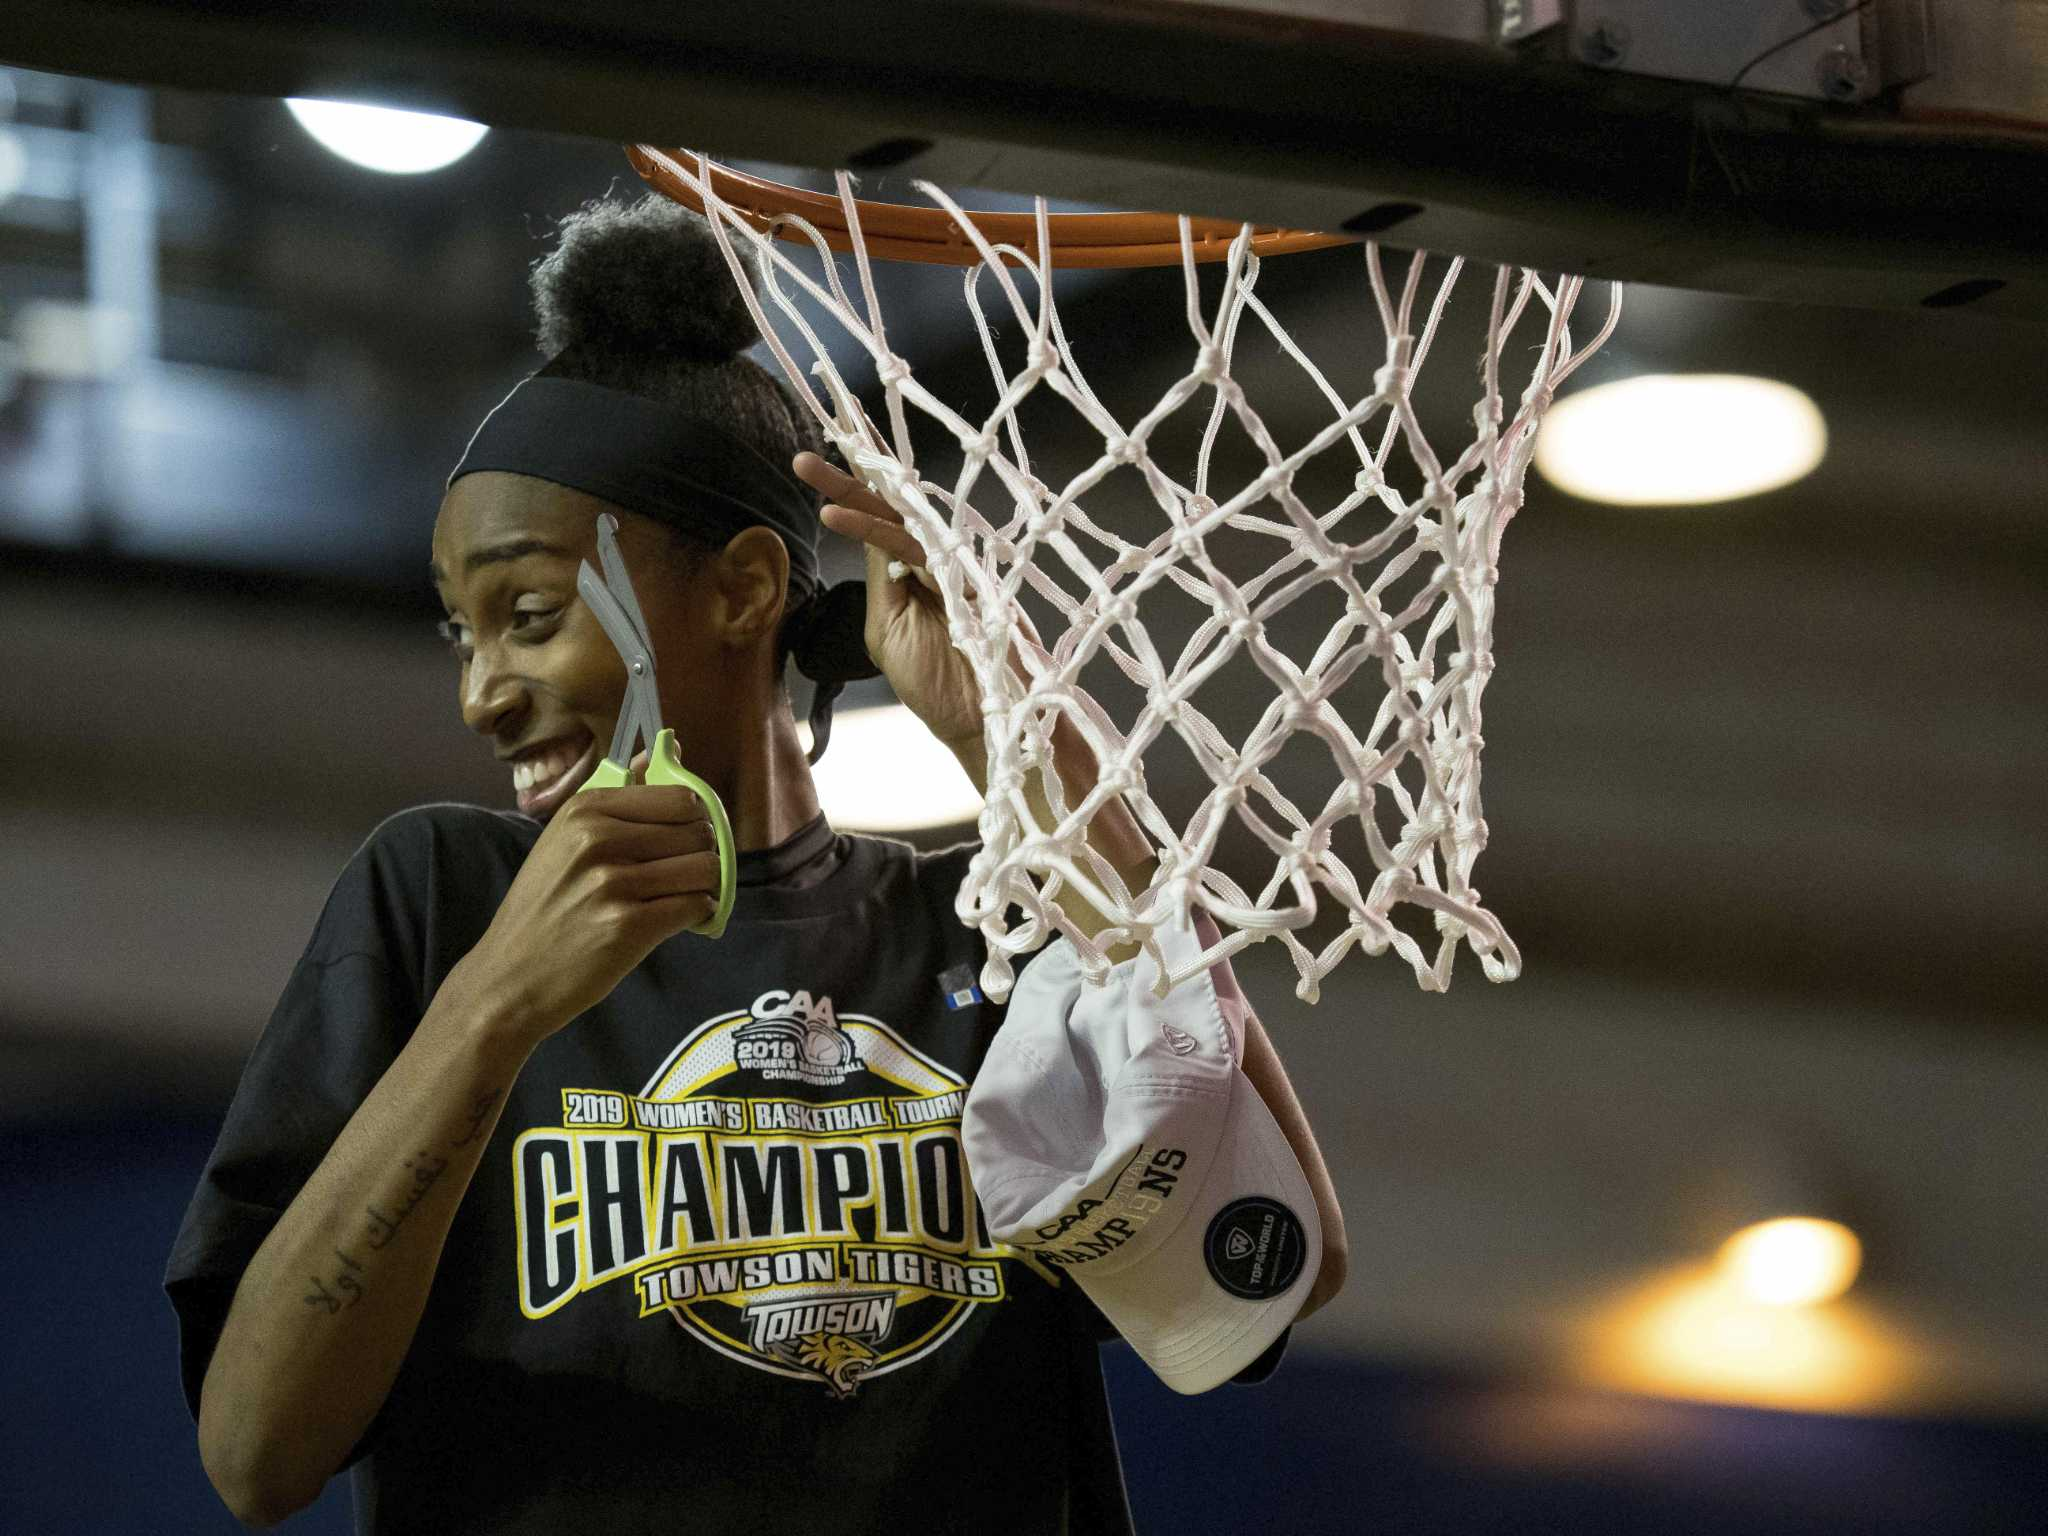 UConn women a No. 2 seed, will face Towson in the first round of NCAA Tournament